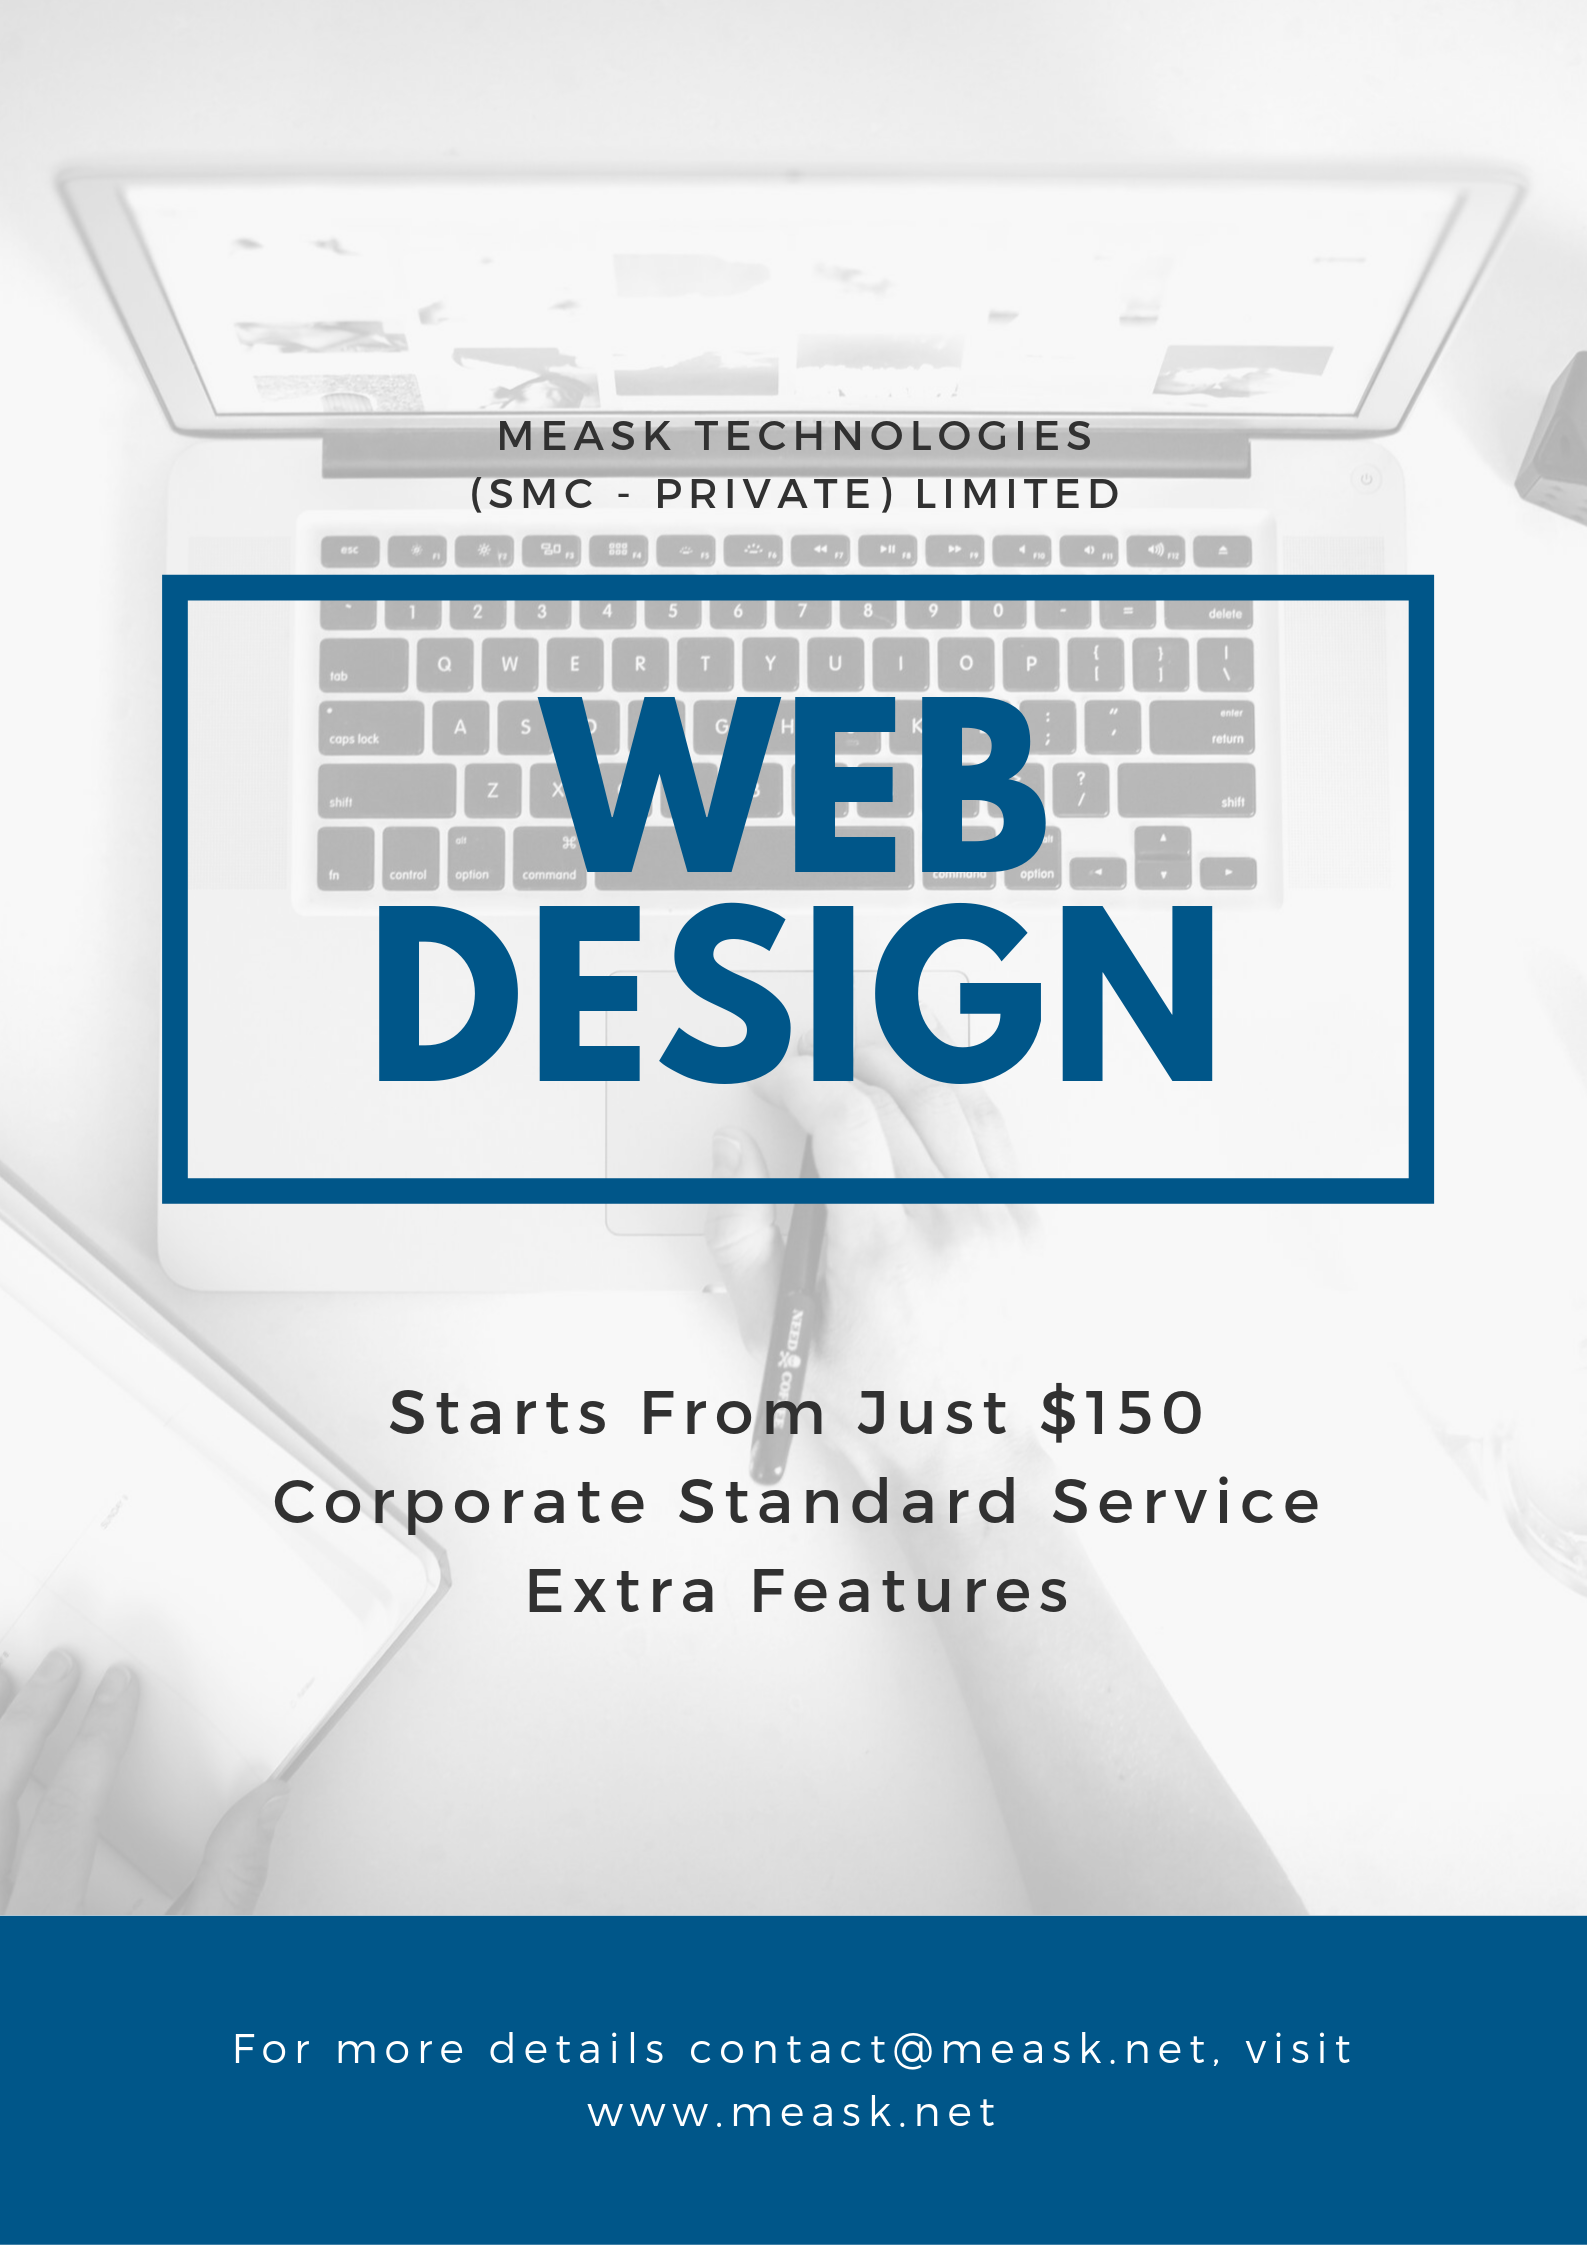 Top No 1 Affordable Web Design Company With Images Web Design Web Design Company Affordable Web Design